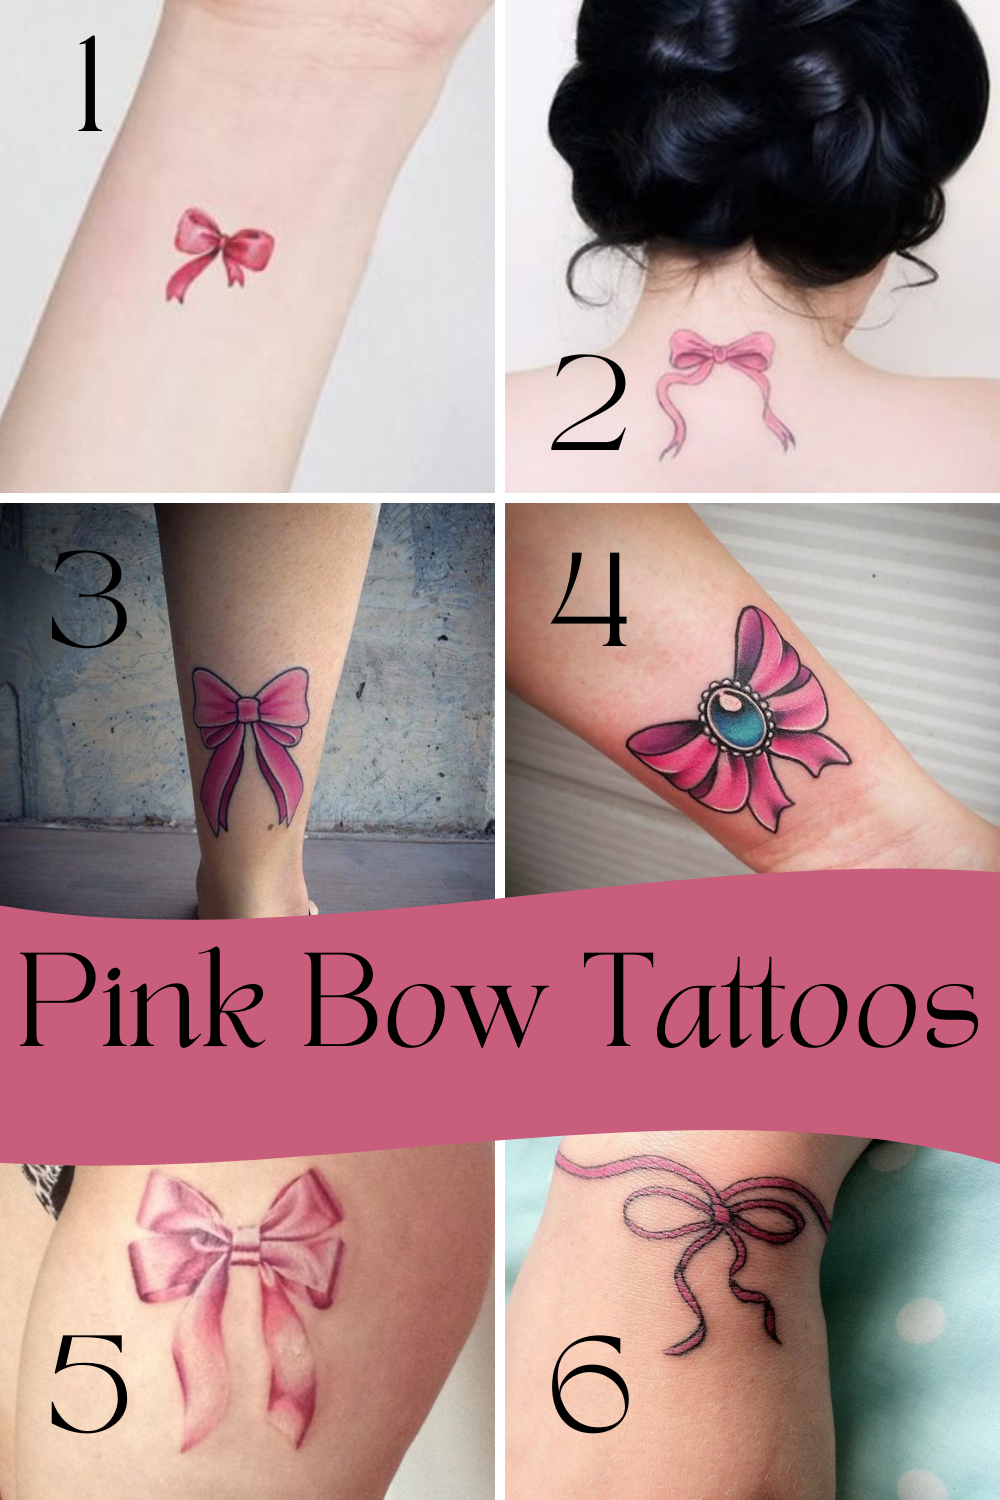 Pink Bow Tattoos